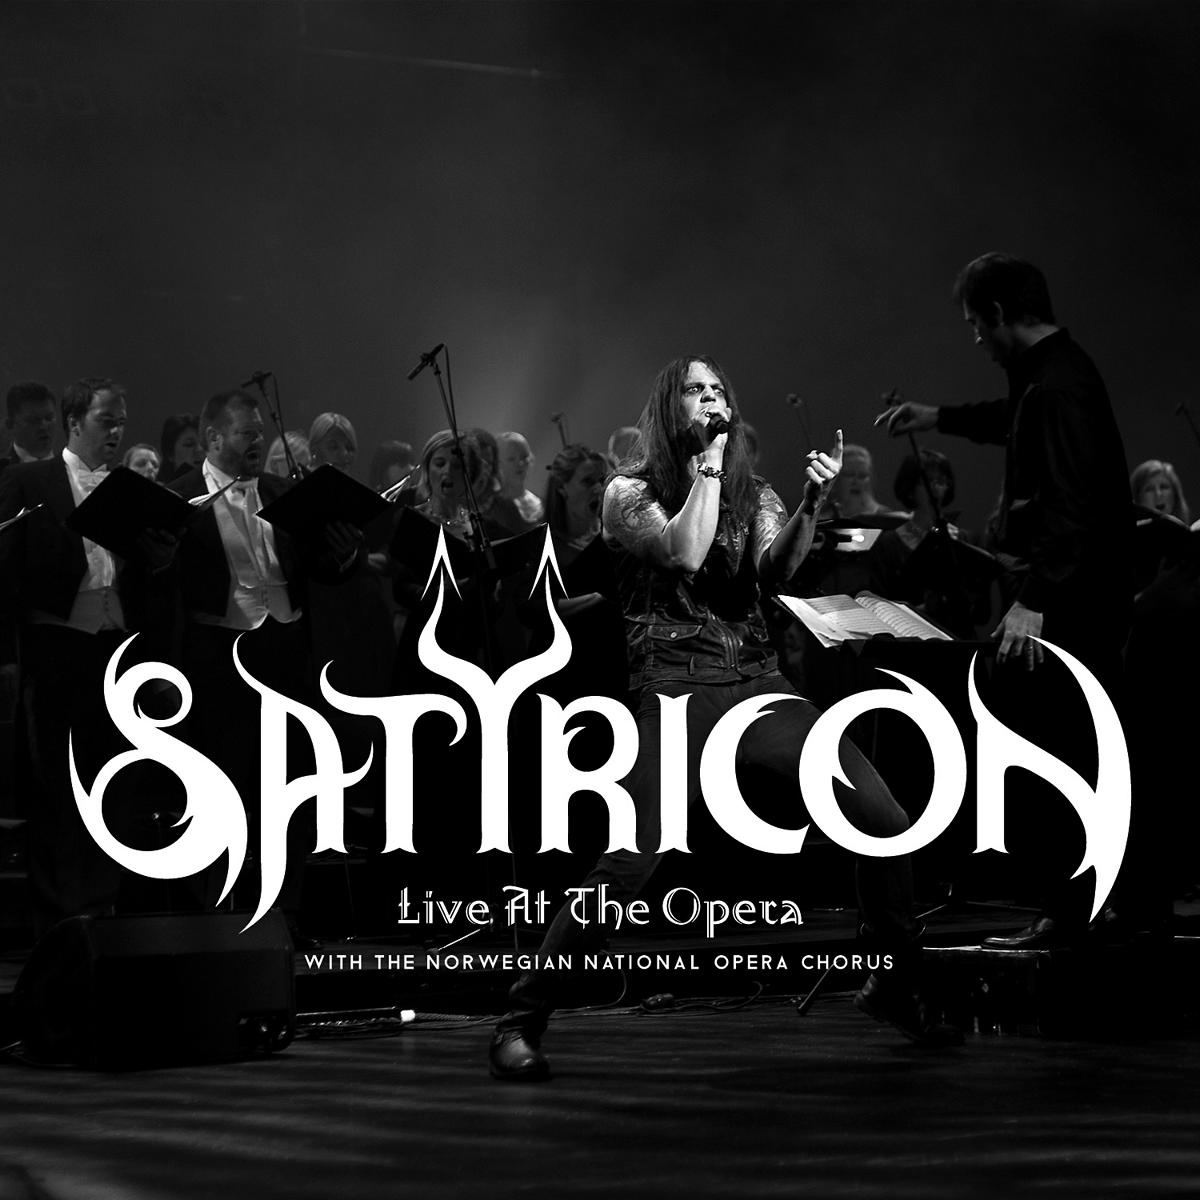 satyricon live at the opera cover